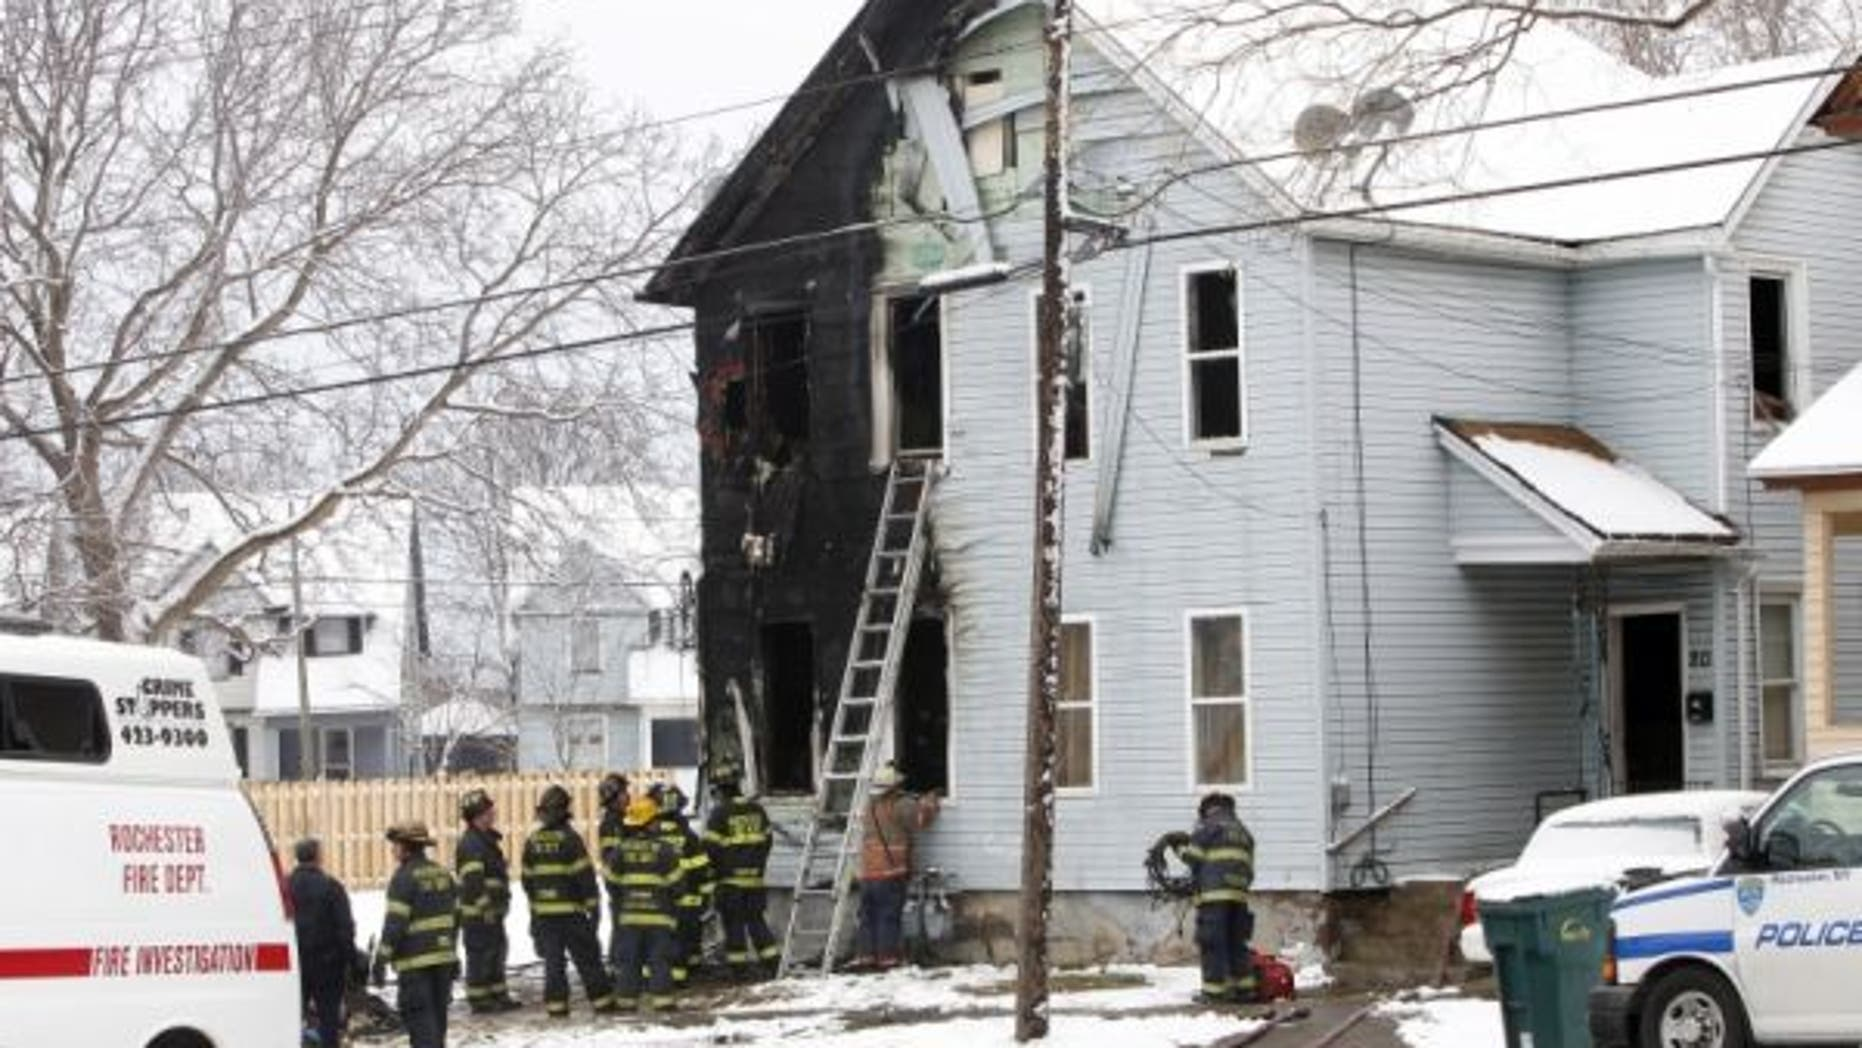 February 18, 2012: Rochester Fire Department officials work at the scene of a fire in Rochester, N.Y.